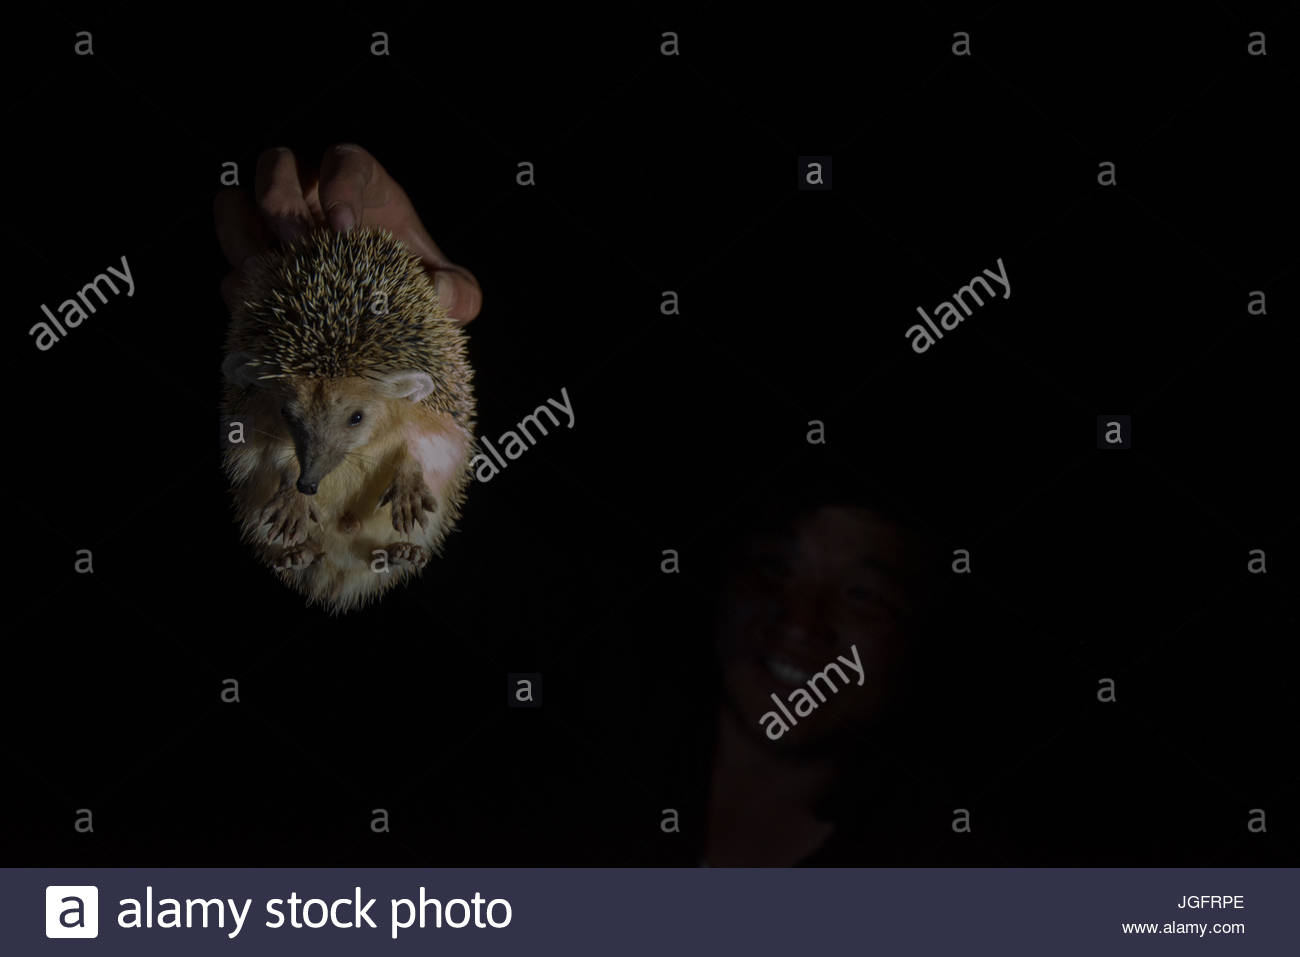 A long eared hedgehog in the Great Gobi Strictly Protected Area. - Stock Image